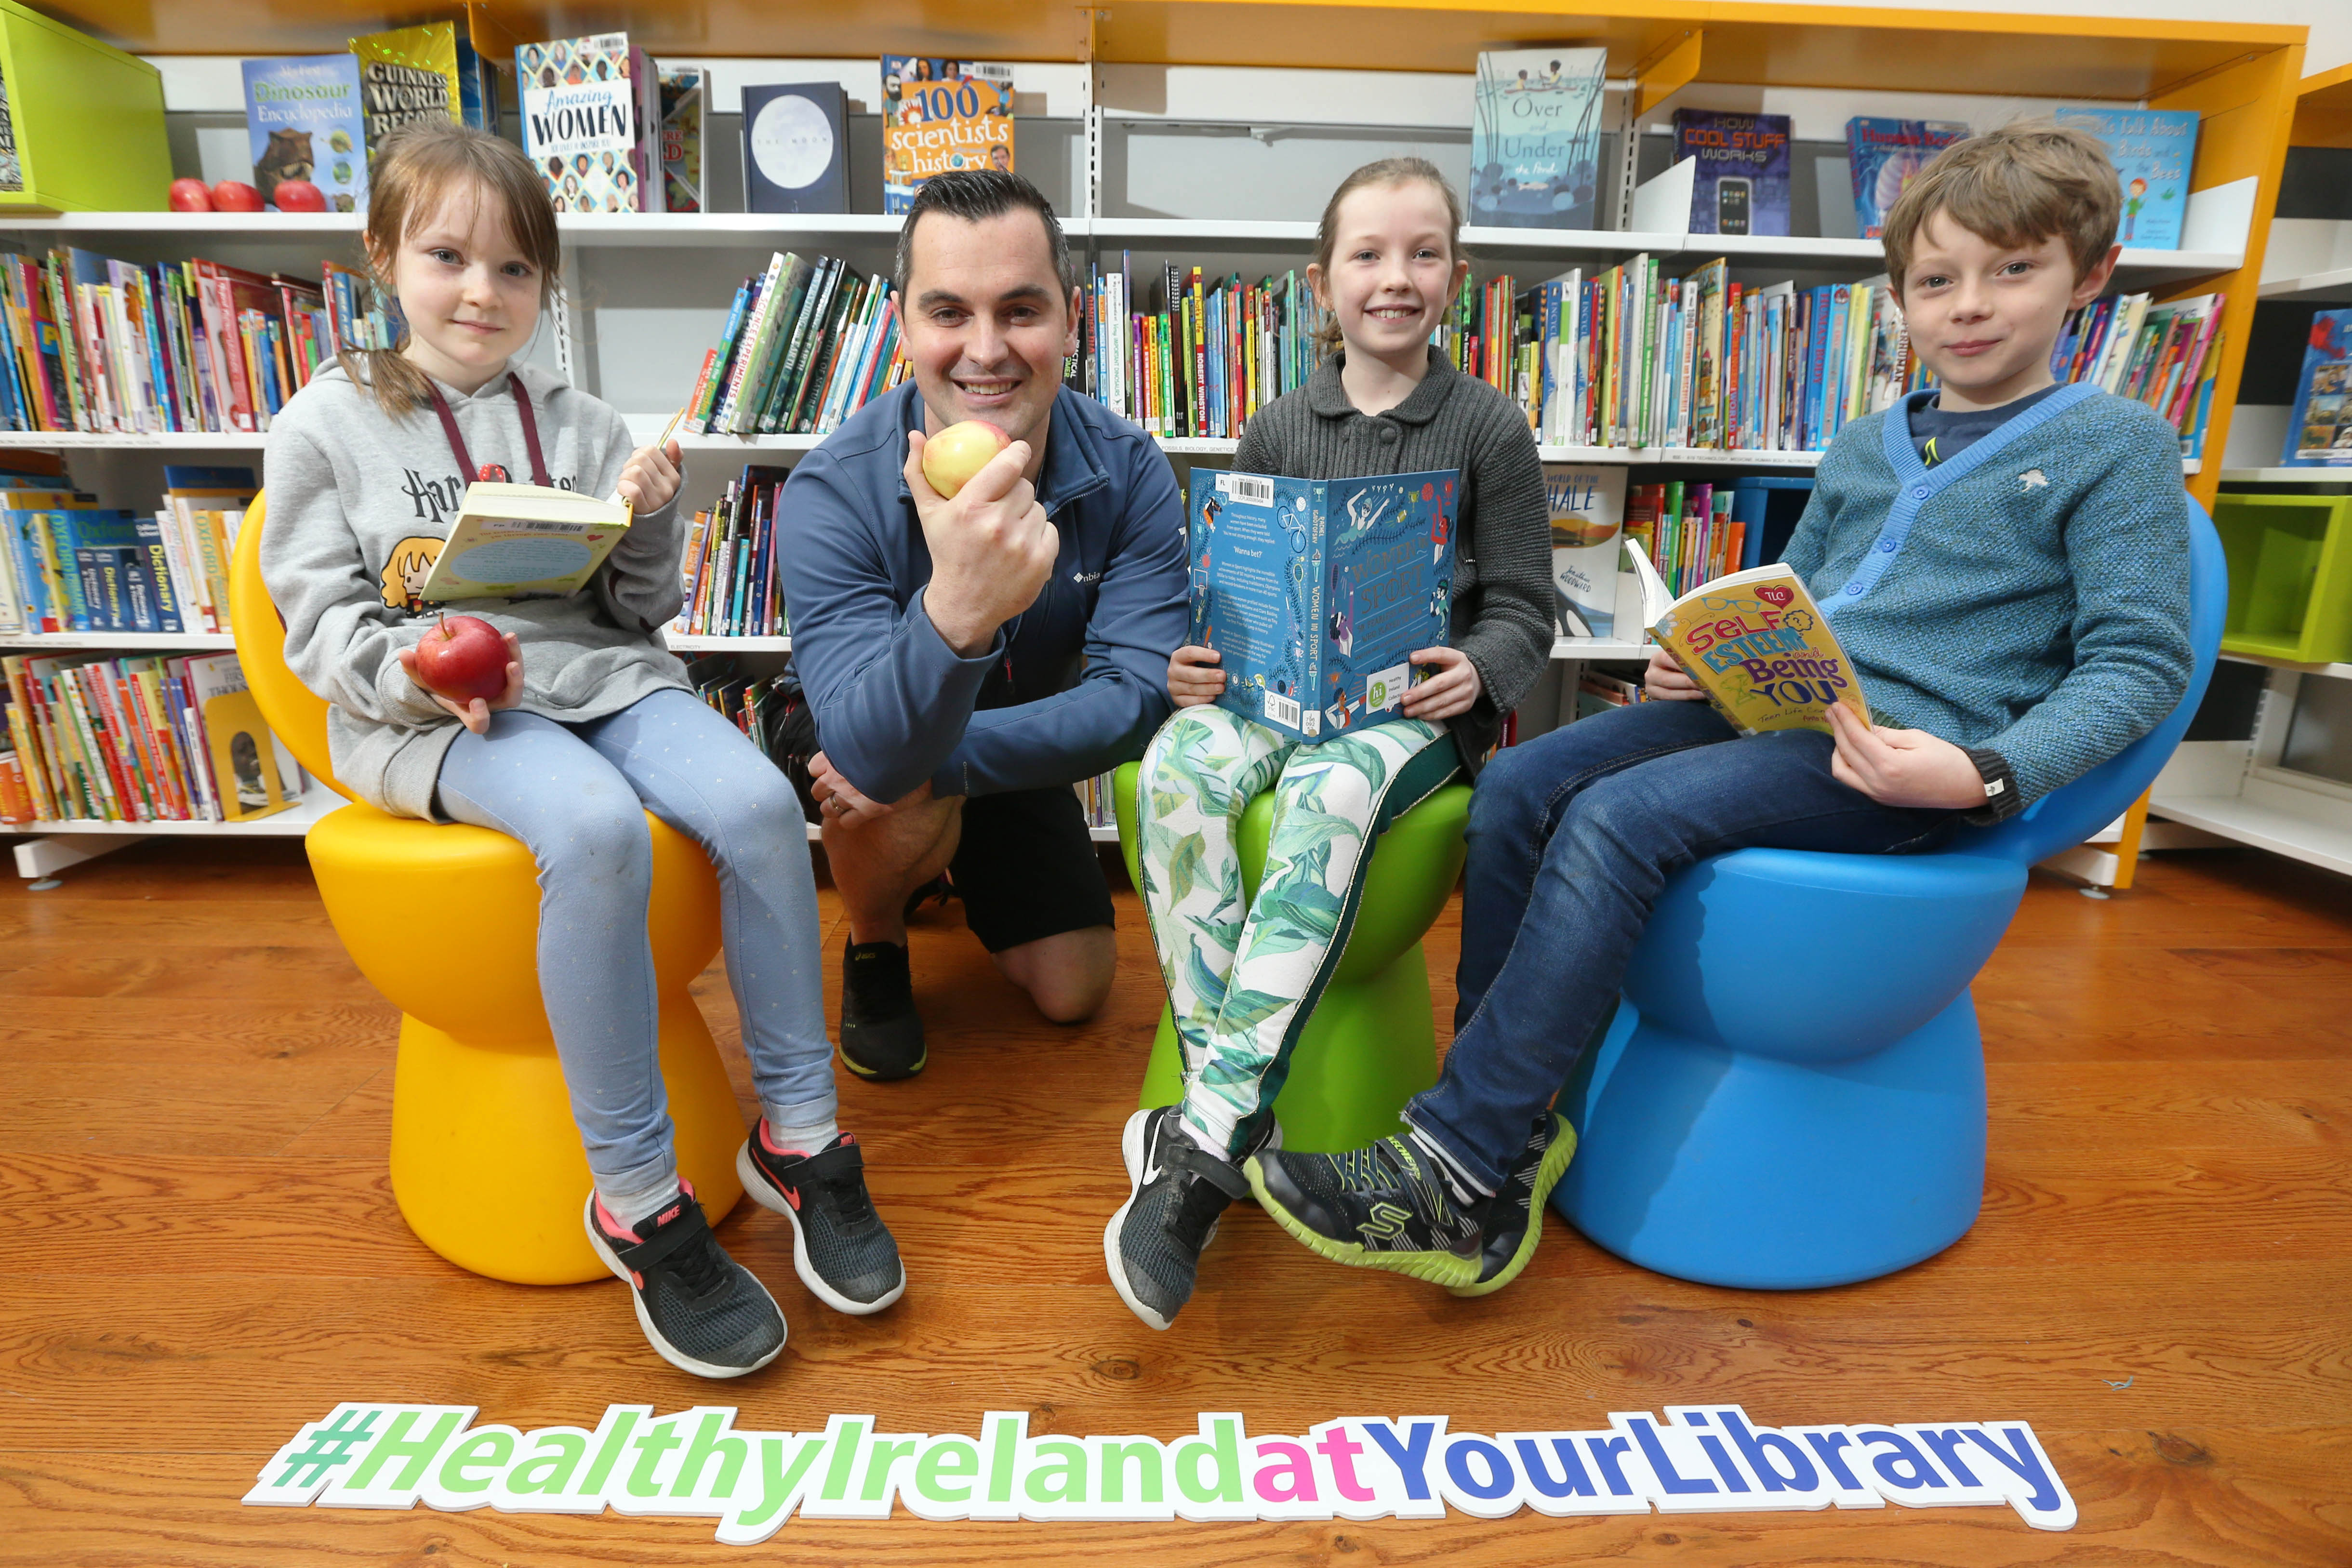 New Healthy Ireland At Your Library Programme  – Eat Well, Think Well, Be Well